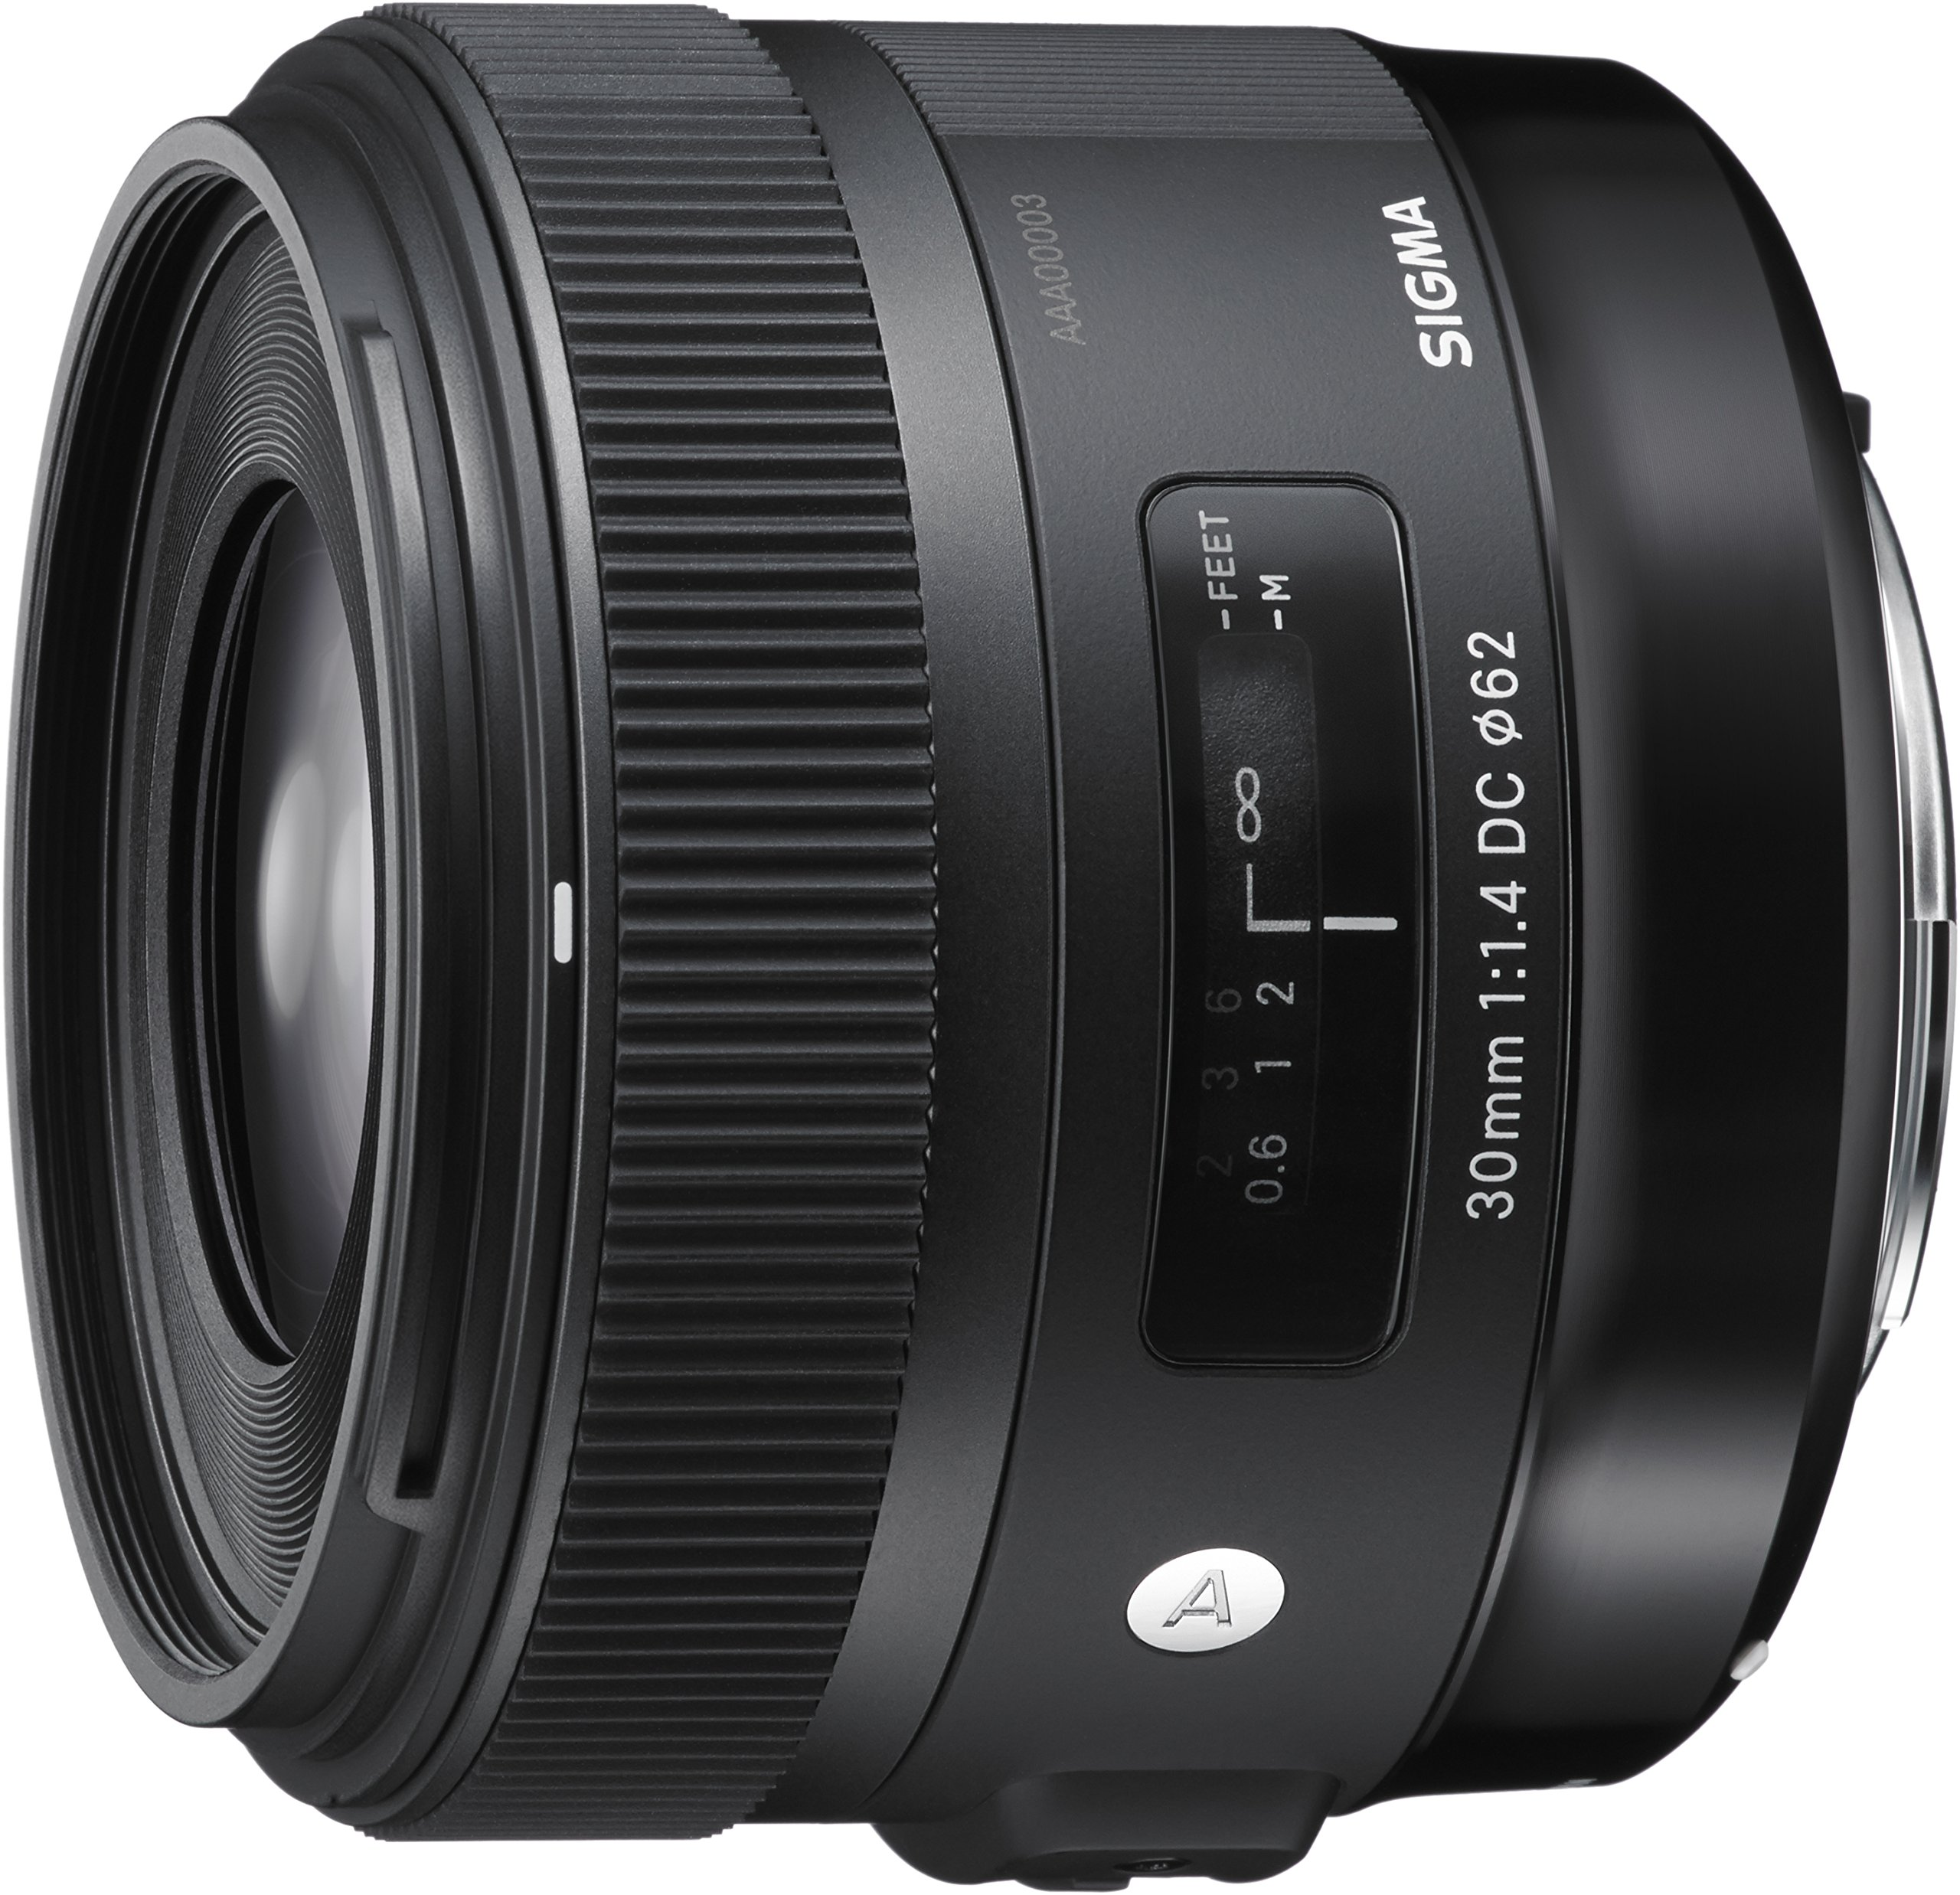 Sigma 30mm F1.4 Art DC HSM Lens for Canon by Sigma